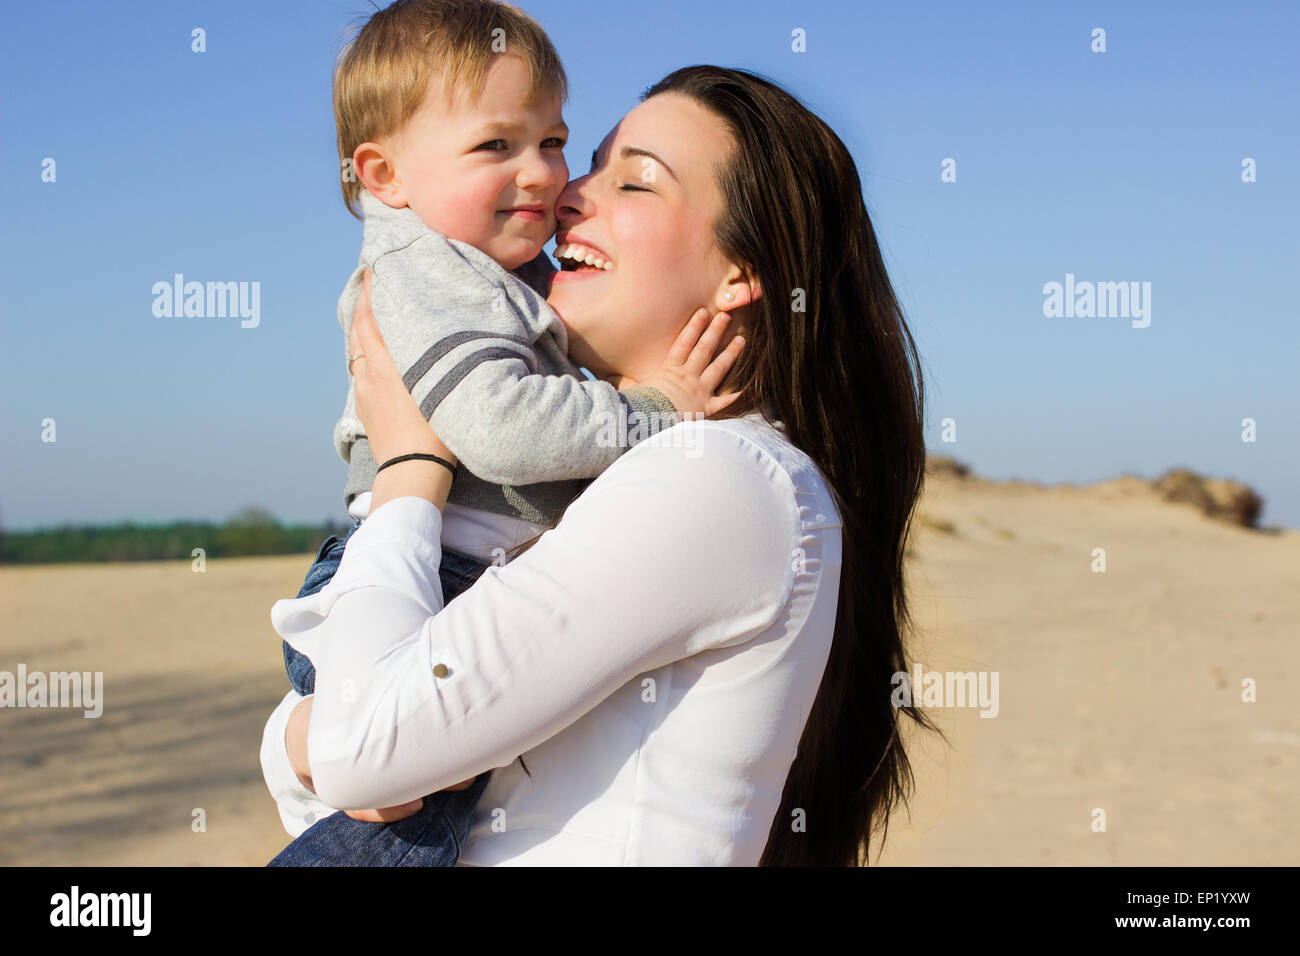 Side view of a woman holding her son - Stock Image